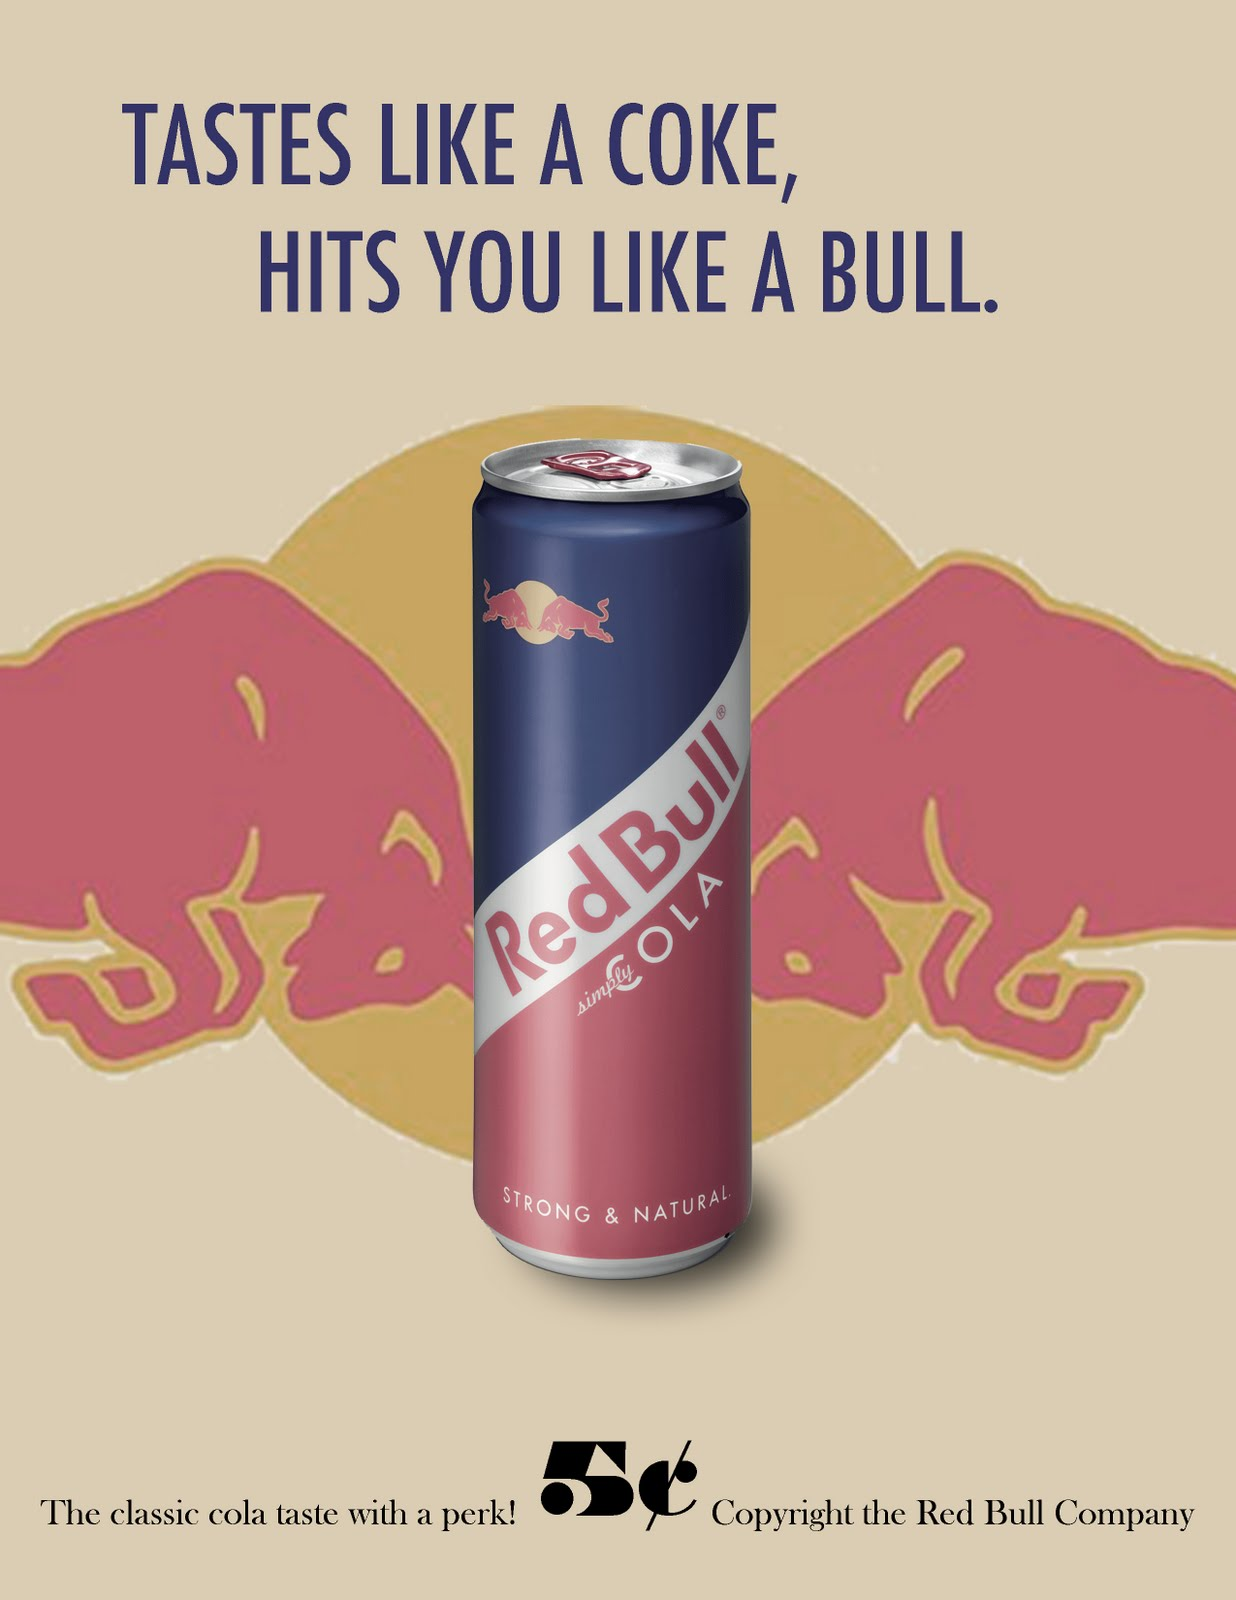 red bull buyer behavior Click here for red bull class action lawsuit information the us food & drug administration (fda) issued a report (pdf) of consumer injuries linked to red bull the agency listed 2016 - hepatitis is a disease of the liver which is most often associated with sexual behavior or abuse.